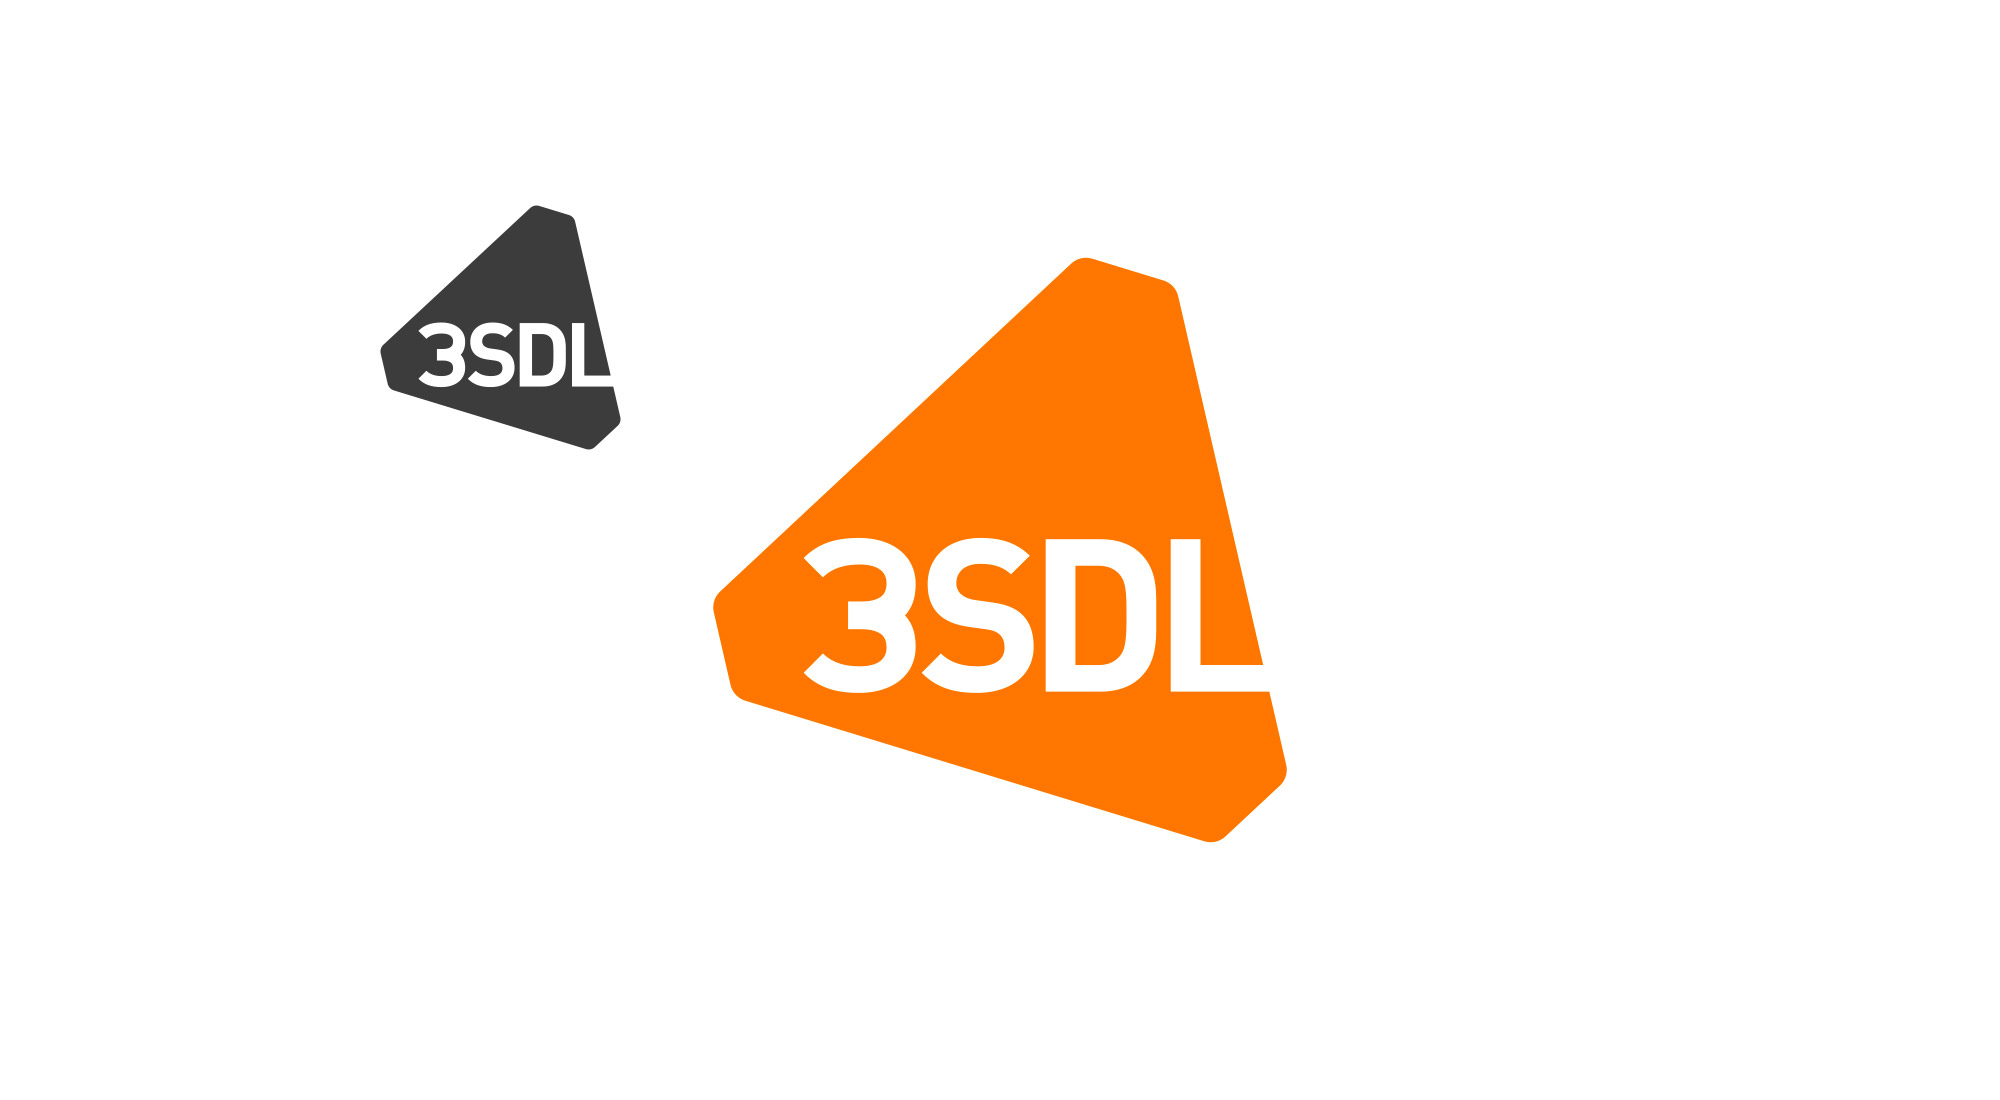 3sdl main logo and monotone logo